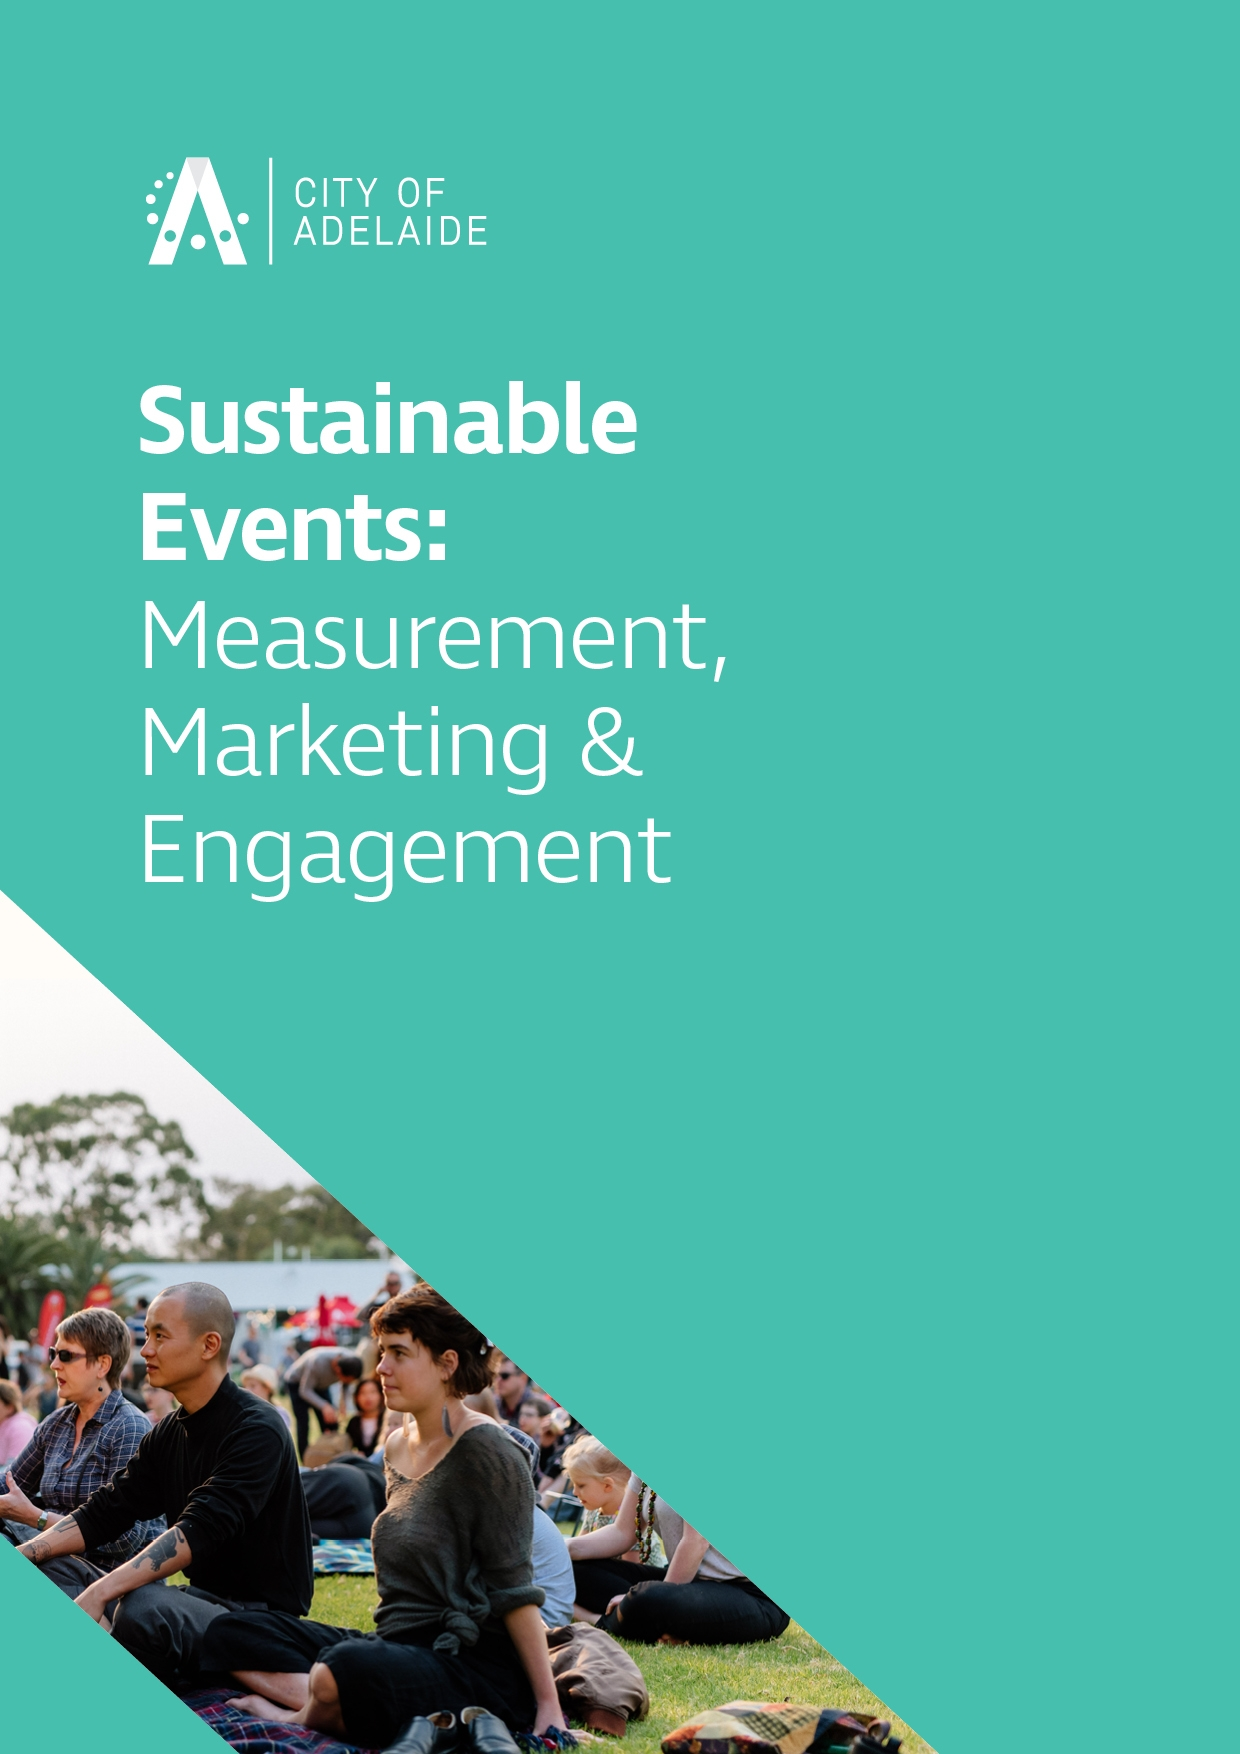 Thumbnail sustainable events checklists measurement marketing engagement